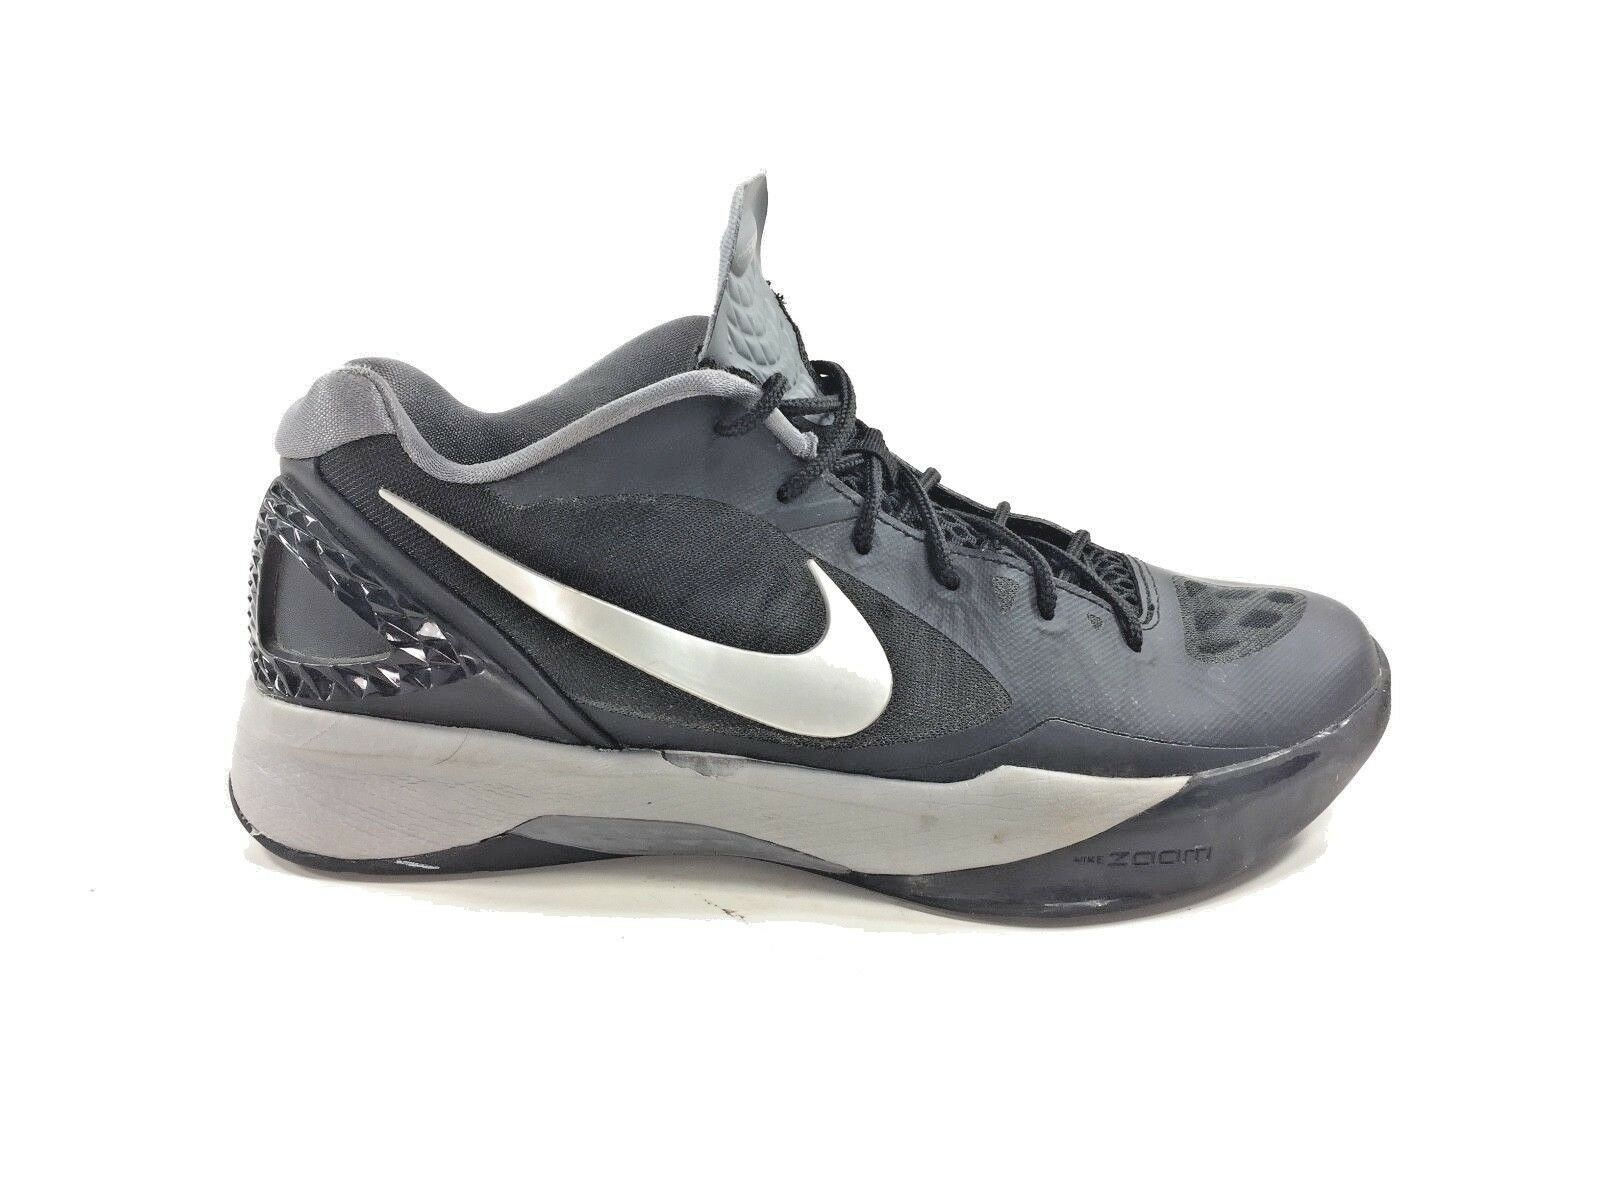 Nike™  VOLLEY ZOOM Volleyball shoes  585763-001  Women Women Women Sz 10  VERY GOOD 1a69c5